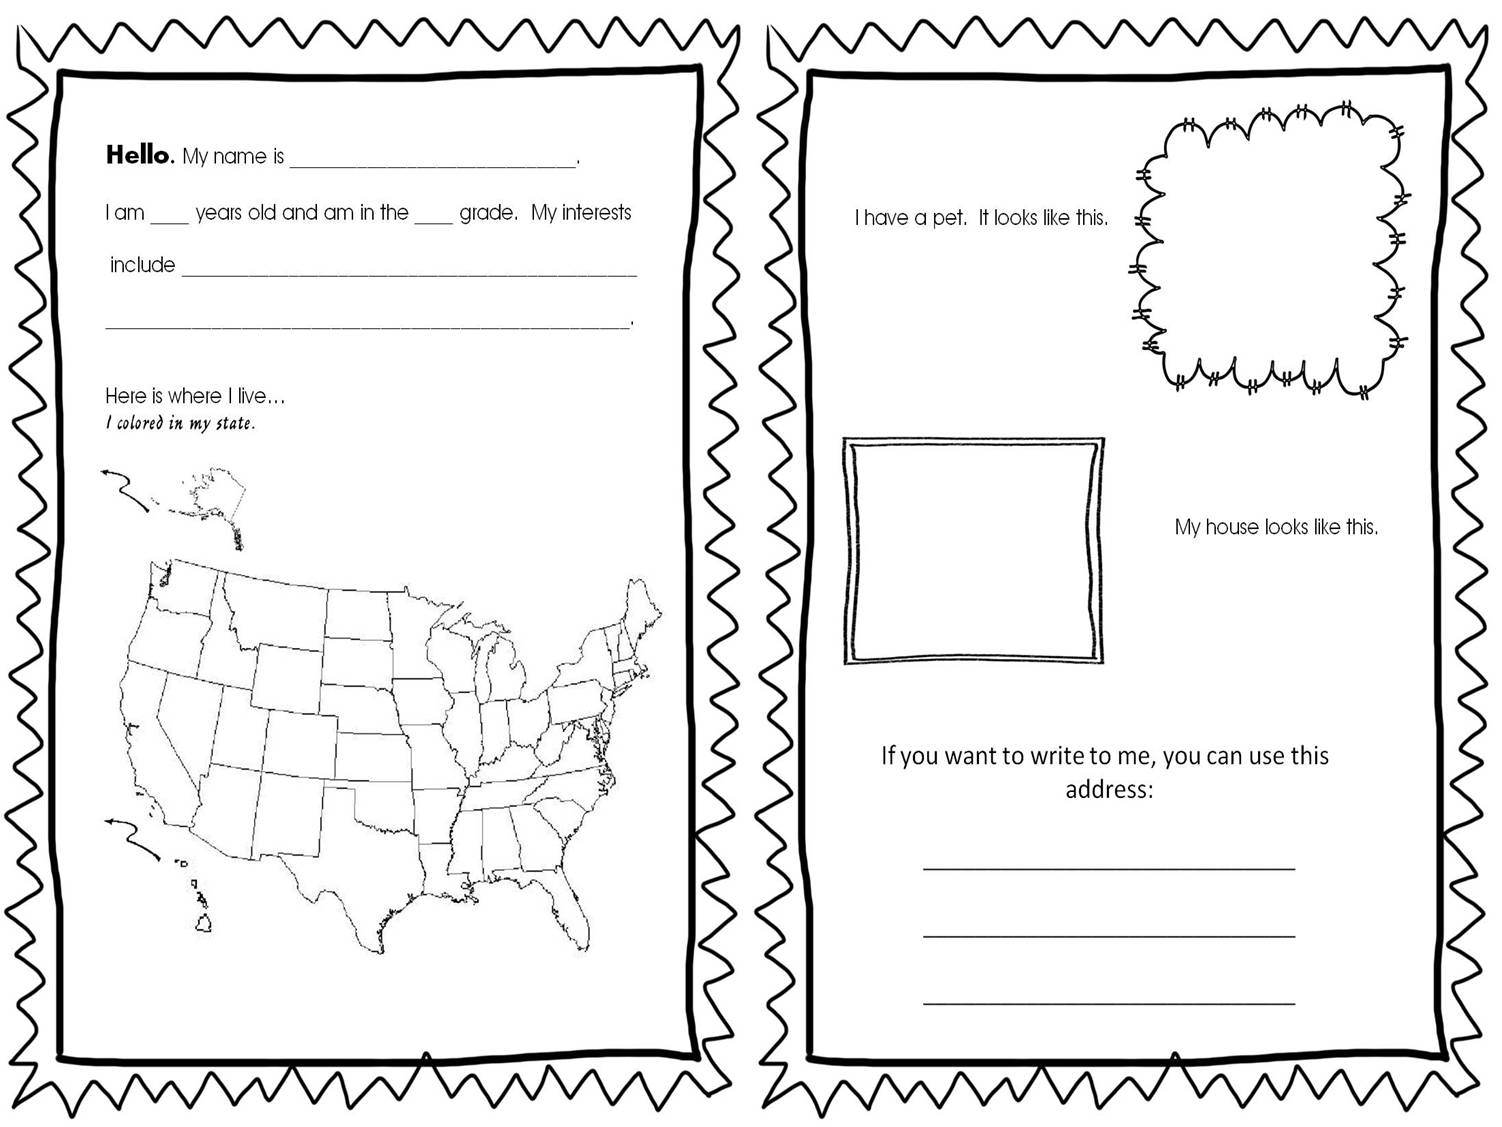 Operation Christmas Child Letter Template - Operation Christmas Child Coloring Page Democraciaejustica